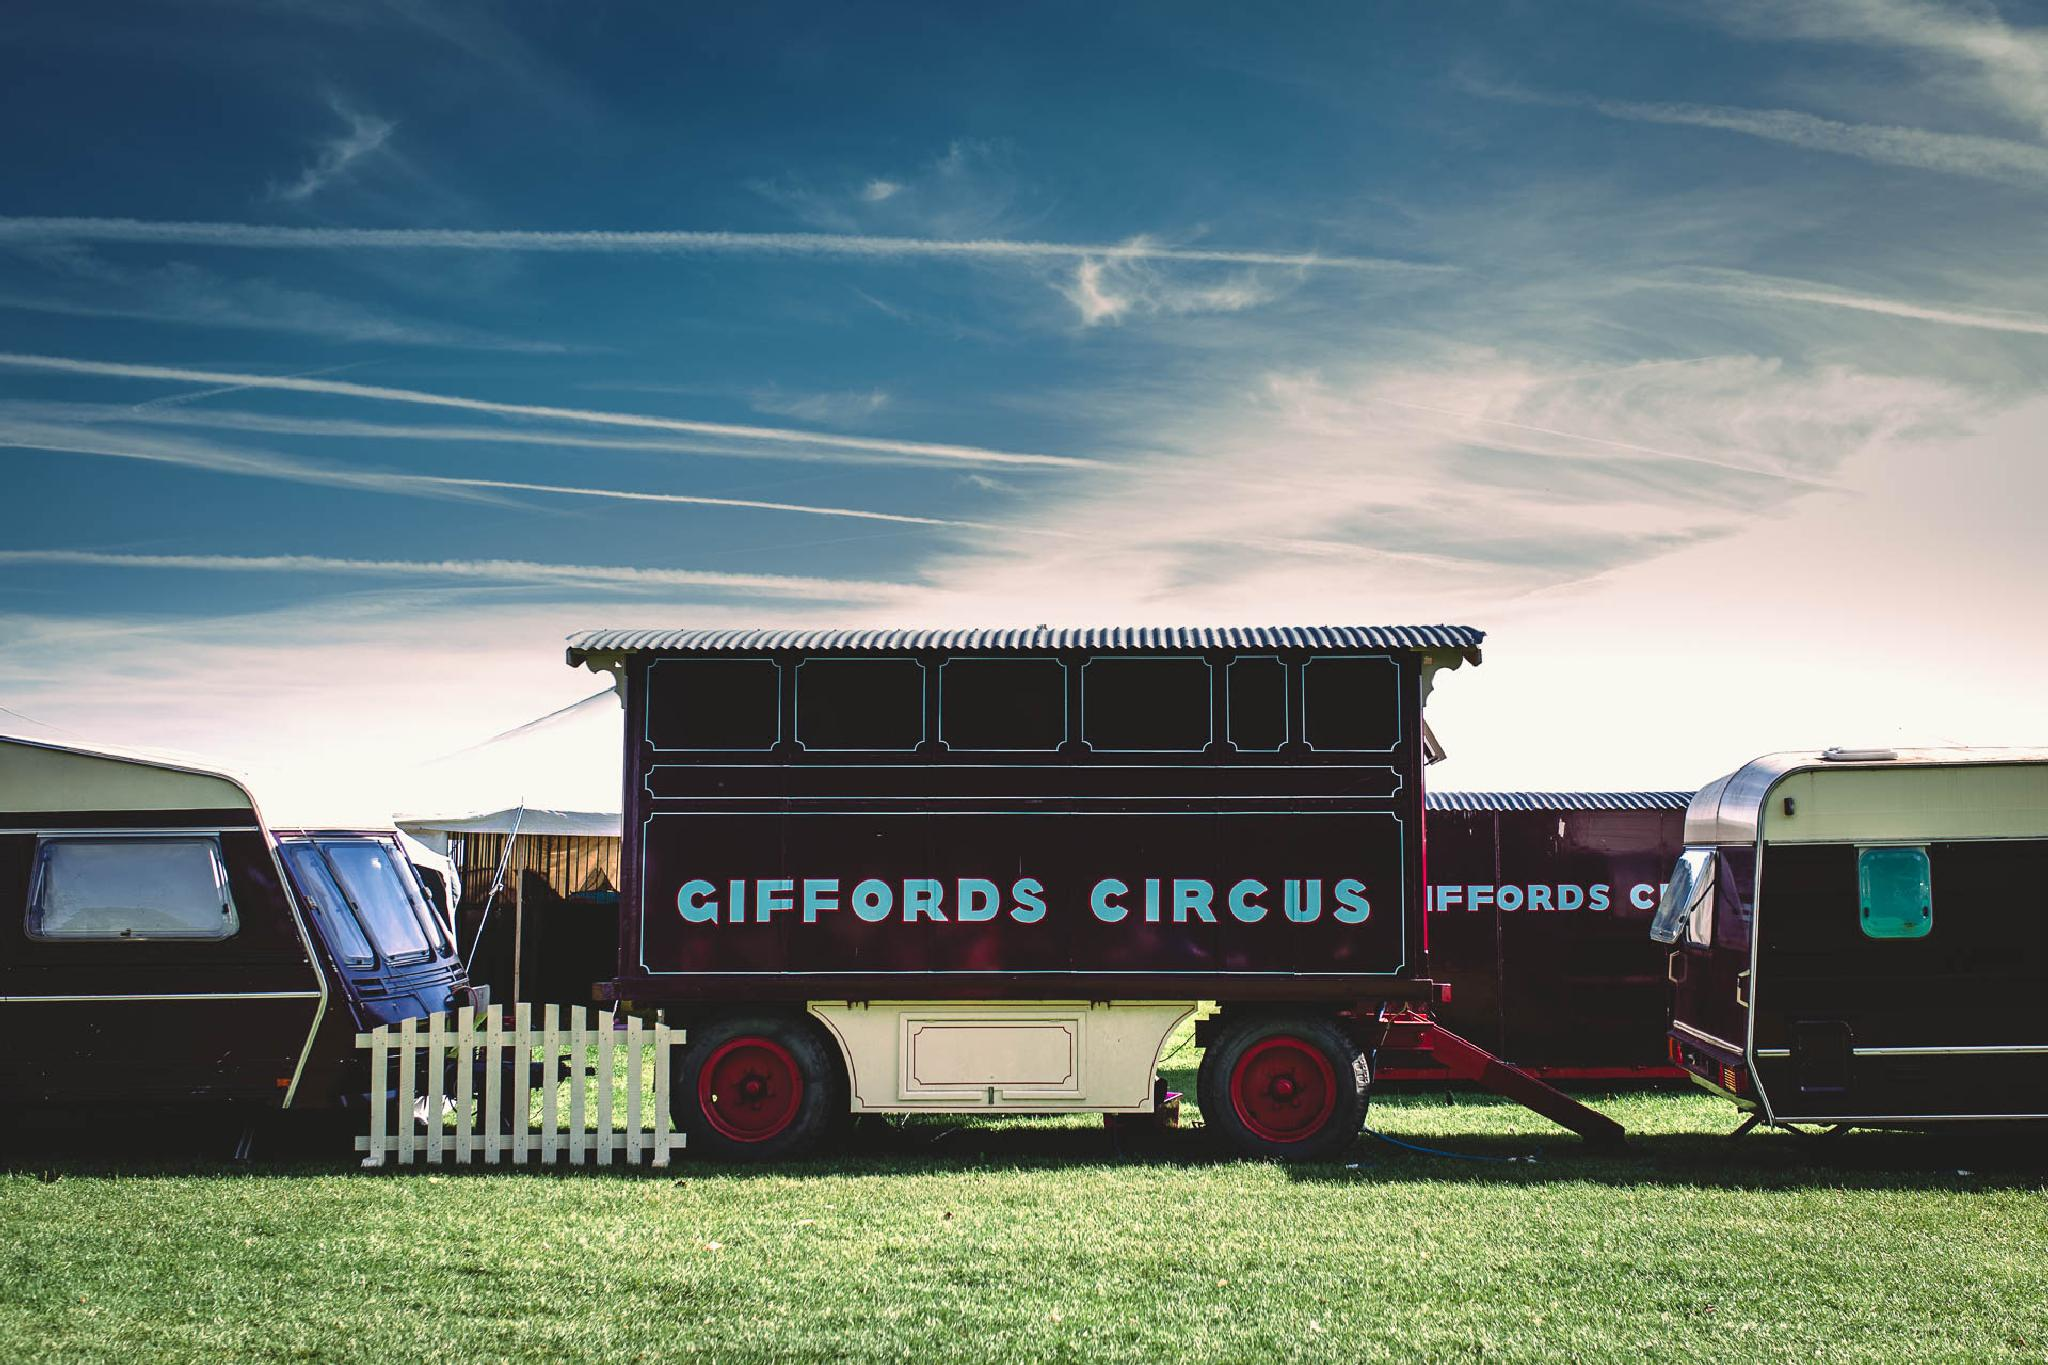 Gifford Circus Wagon by the.corpy